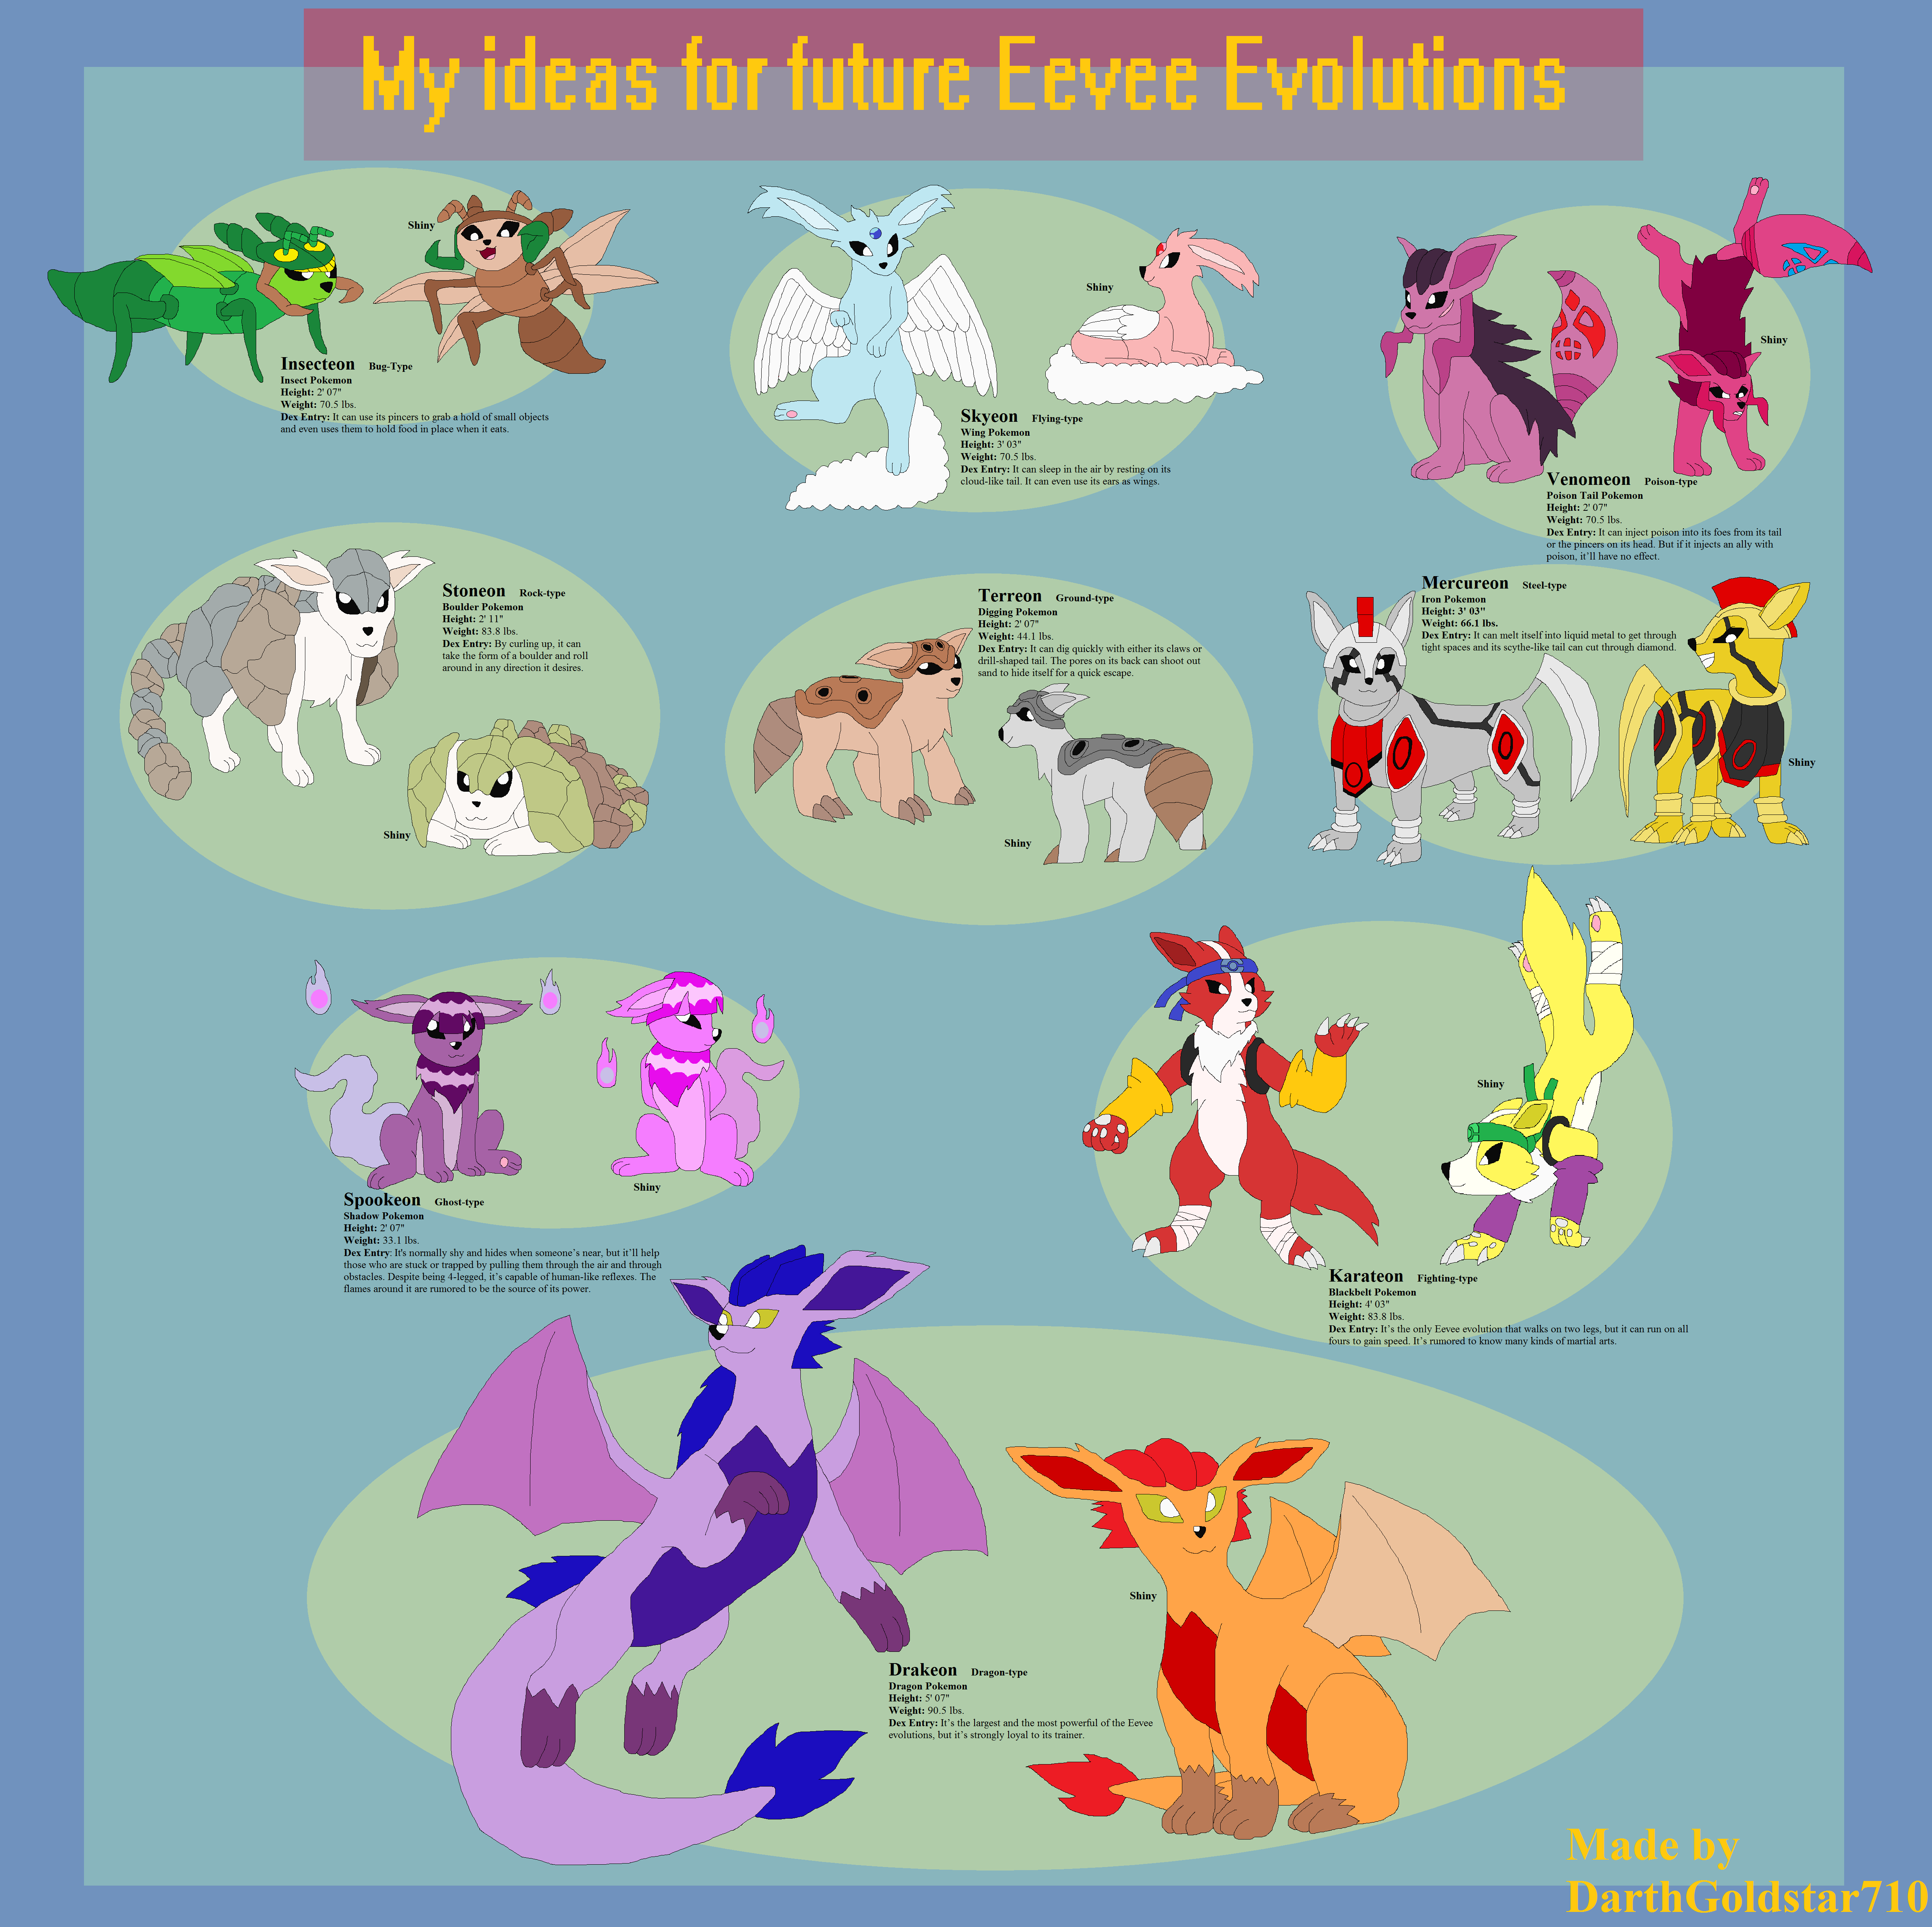 Future Eevee Evolutions by DarthGoldstar710 on DeviantArt